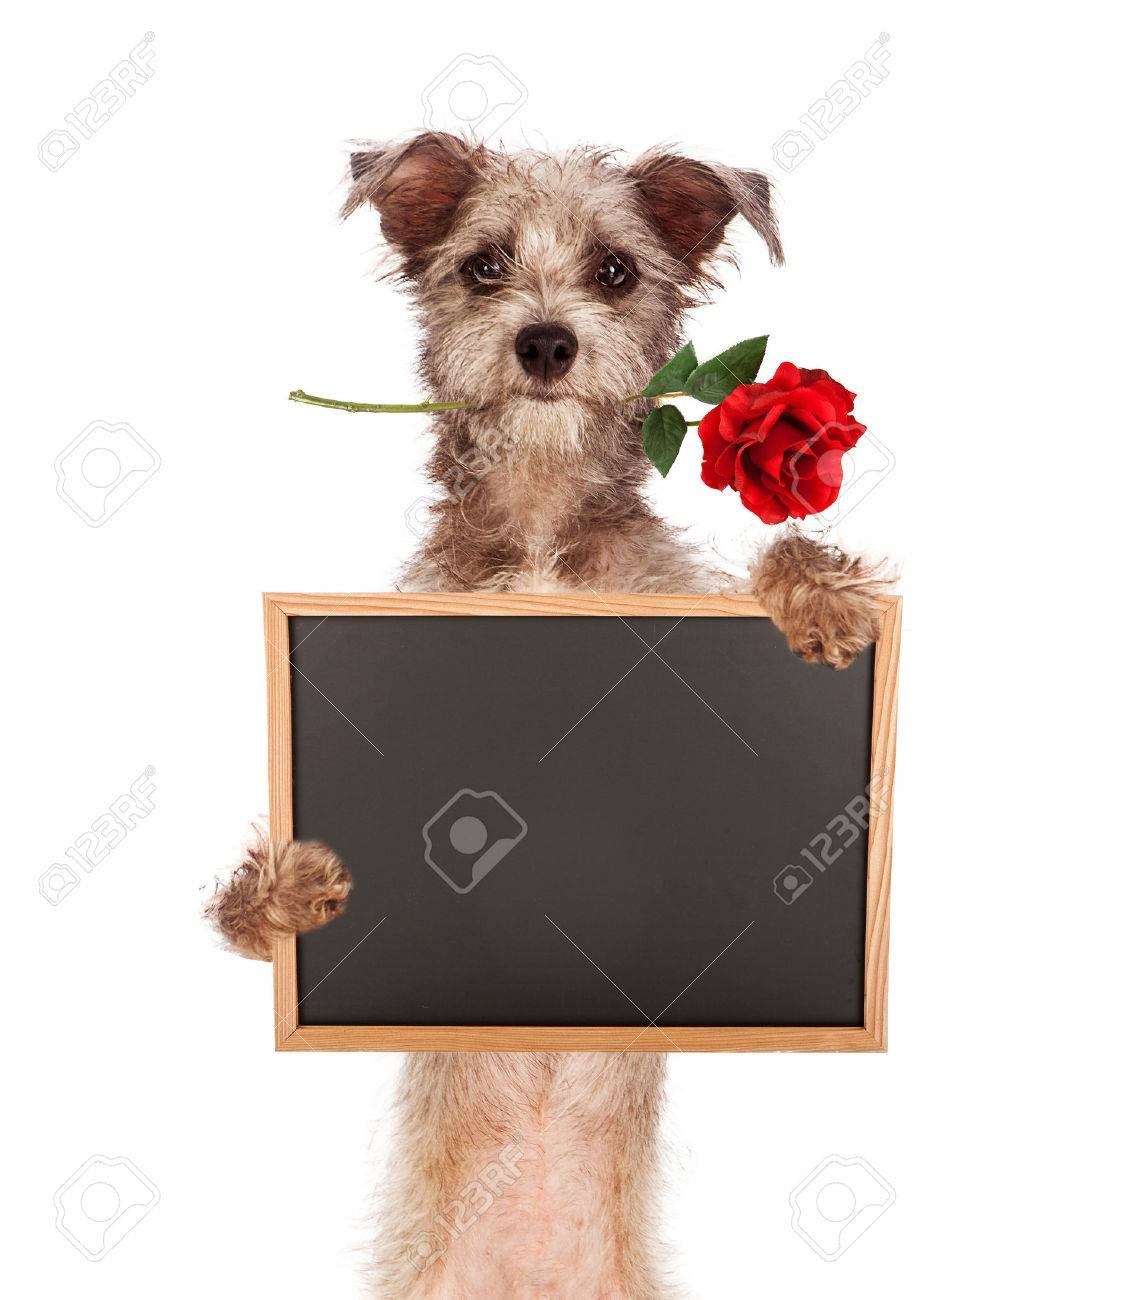 A Cute Scruffy Terrier Mixed Breed Dog Standing Up Carrying A Red Rose In His Mouth And Holding A Blank Chalkboard Terrier Mix Breeds Terrier Mix Chalk Fonts